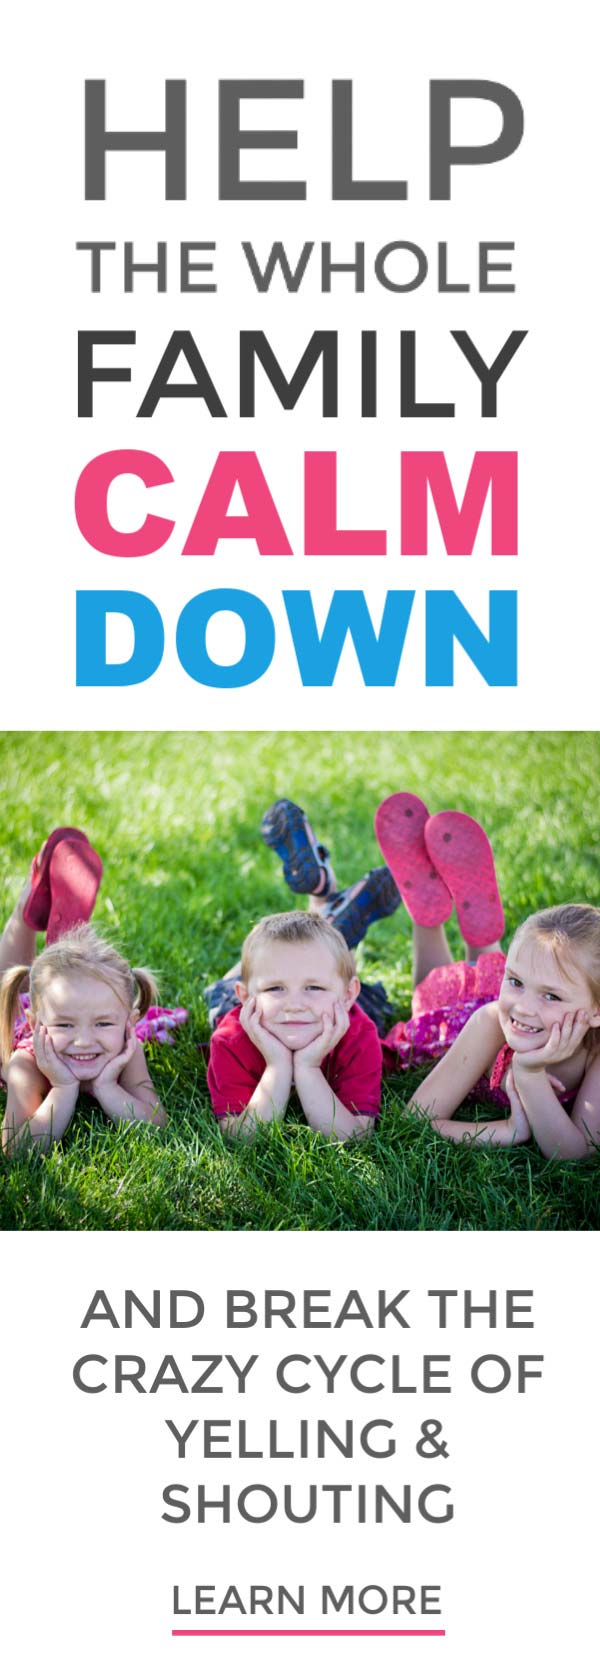 Stop family flare ups and help everyone calm down with these simple proven tips #families #parentinghacks #parenthood #parents #yelling #shouting #tantrums